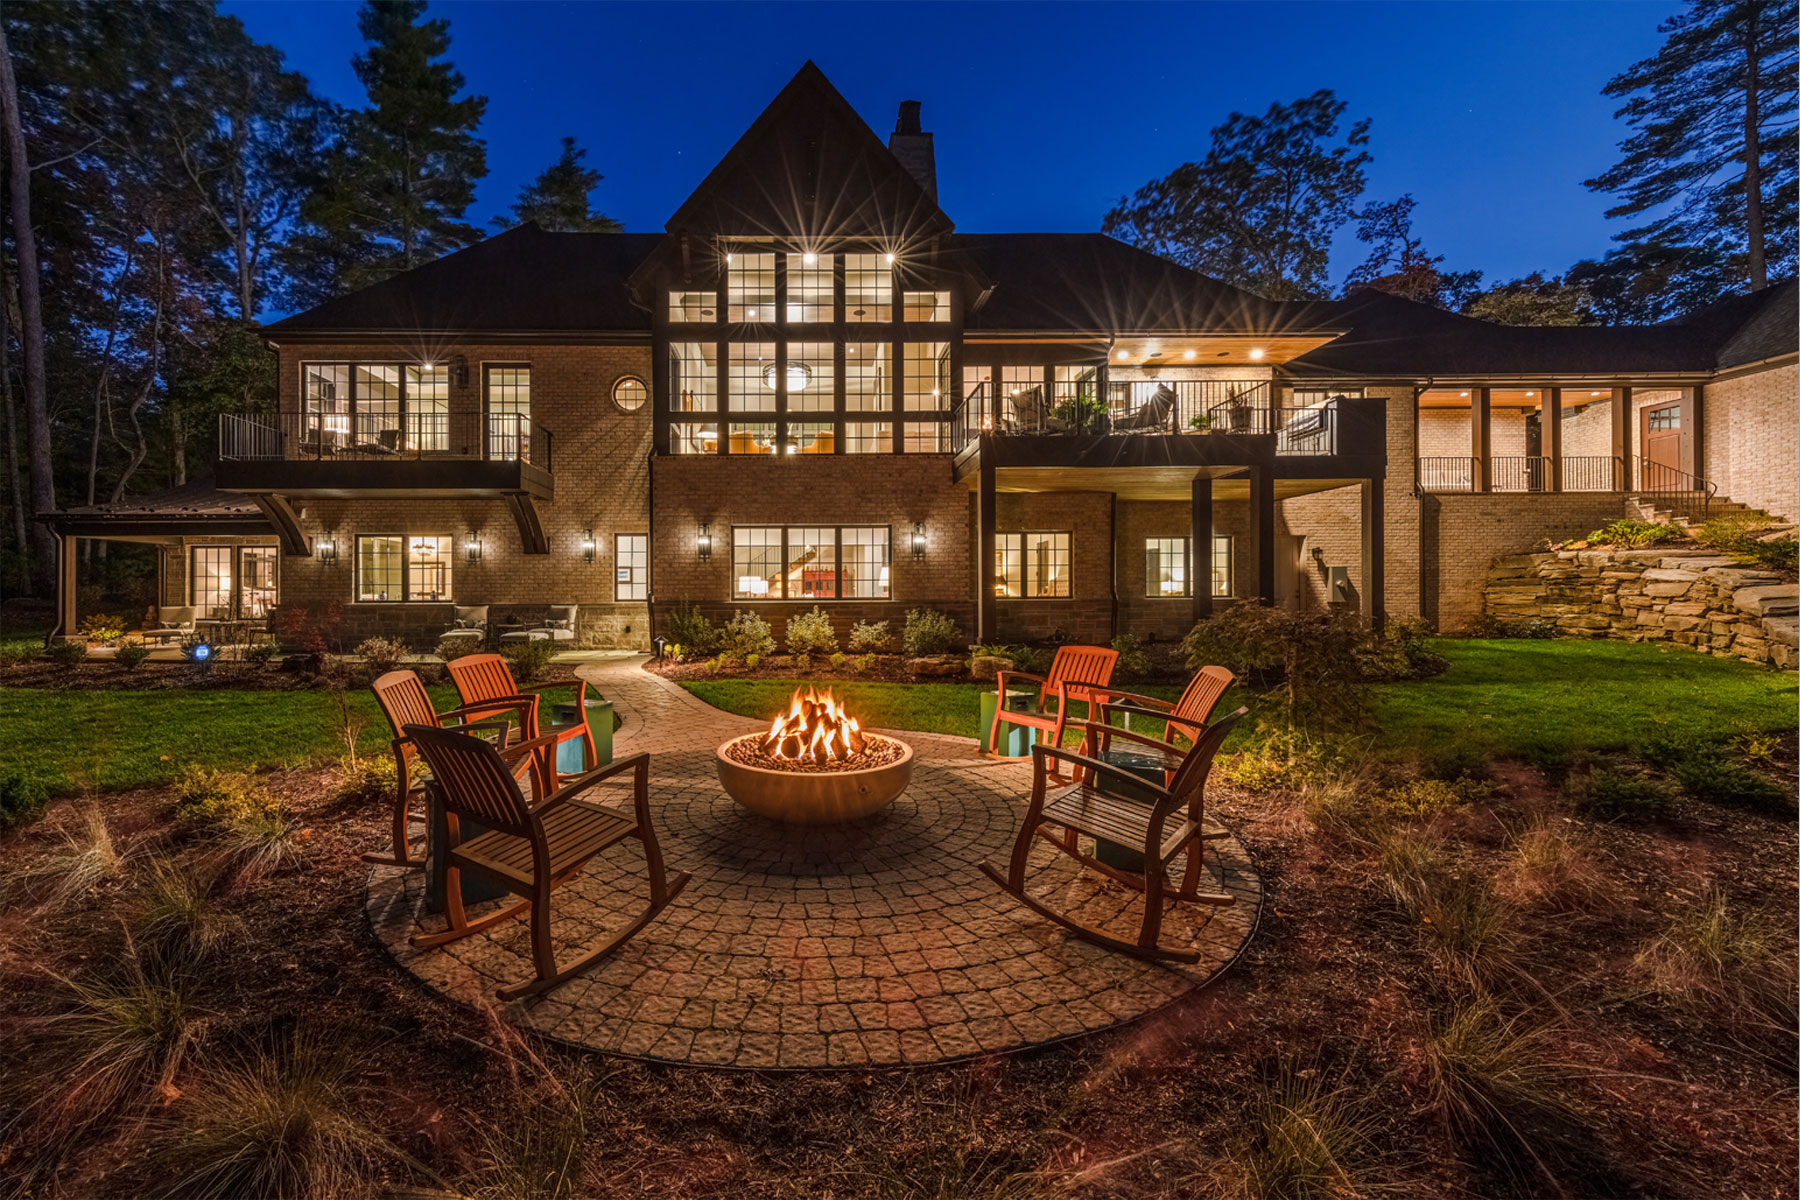 Custom designed mountain home with outdoor living area including firepit